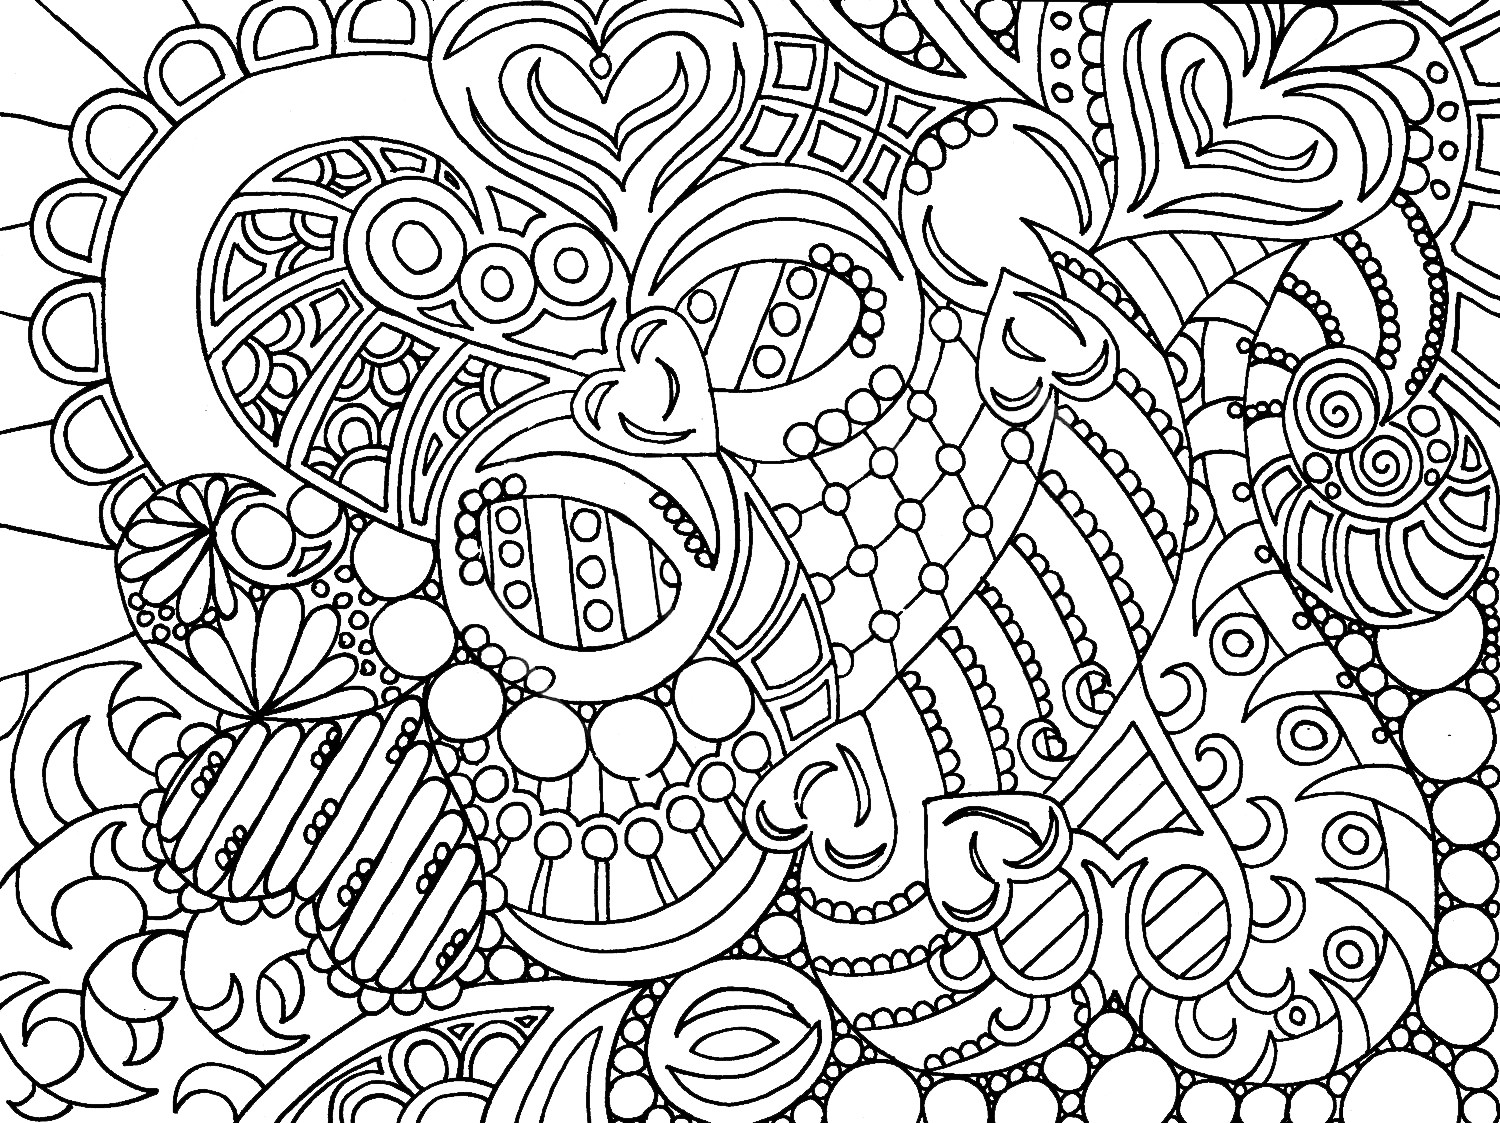 Free Coloring Pages Online Adults  free coloring pages for adults